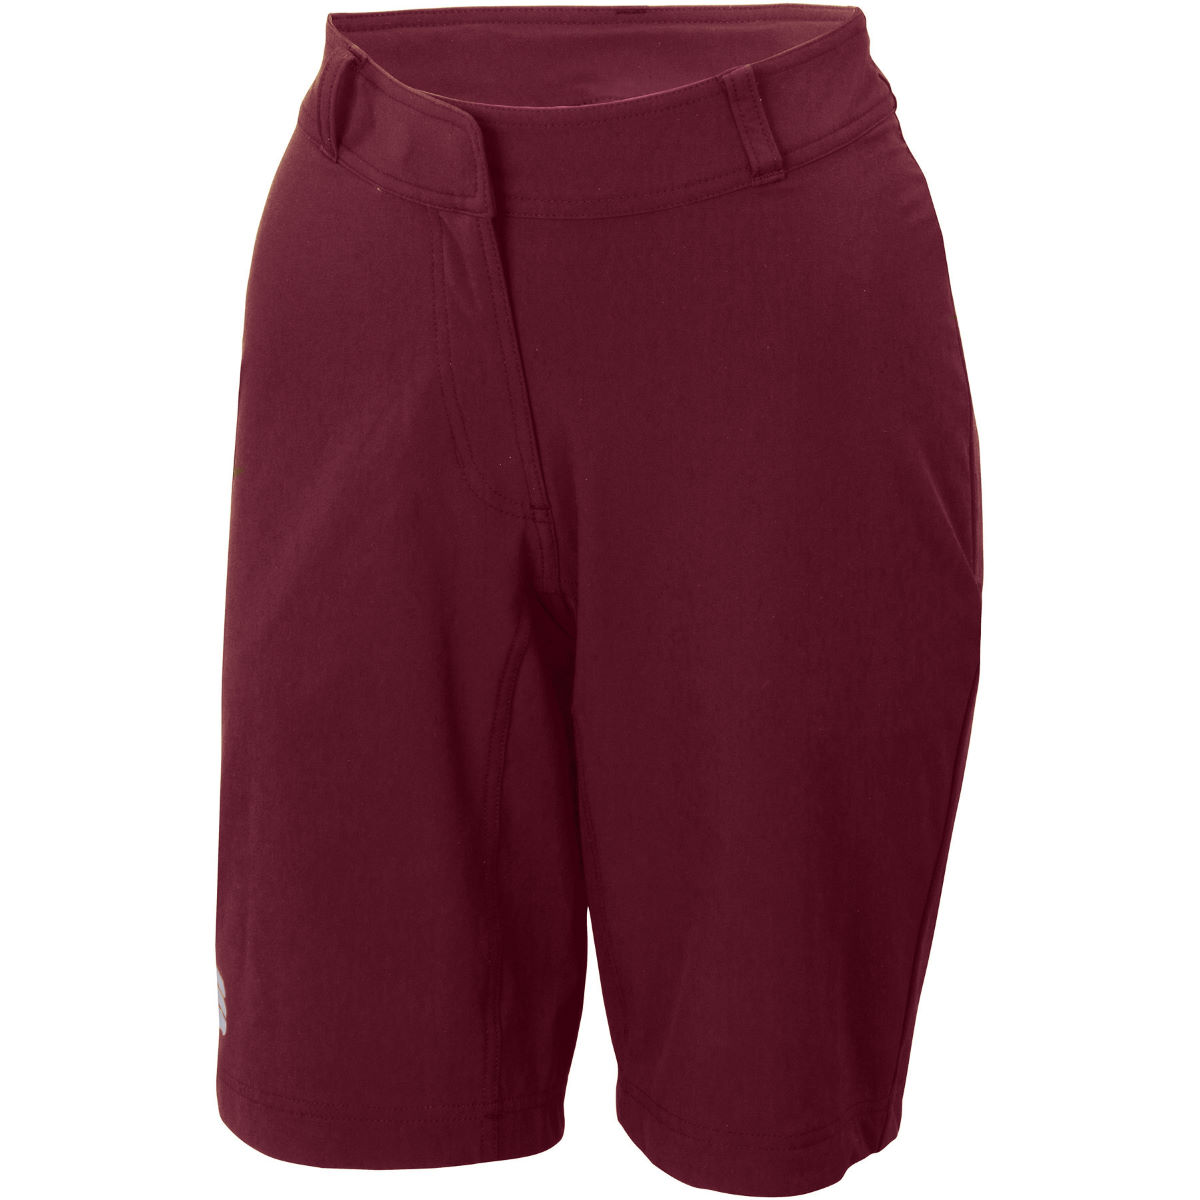 Sportful Womens Giara Over Shorts - Xs Red Wine  Baggy Shorts